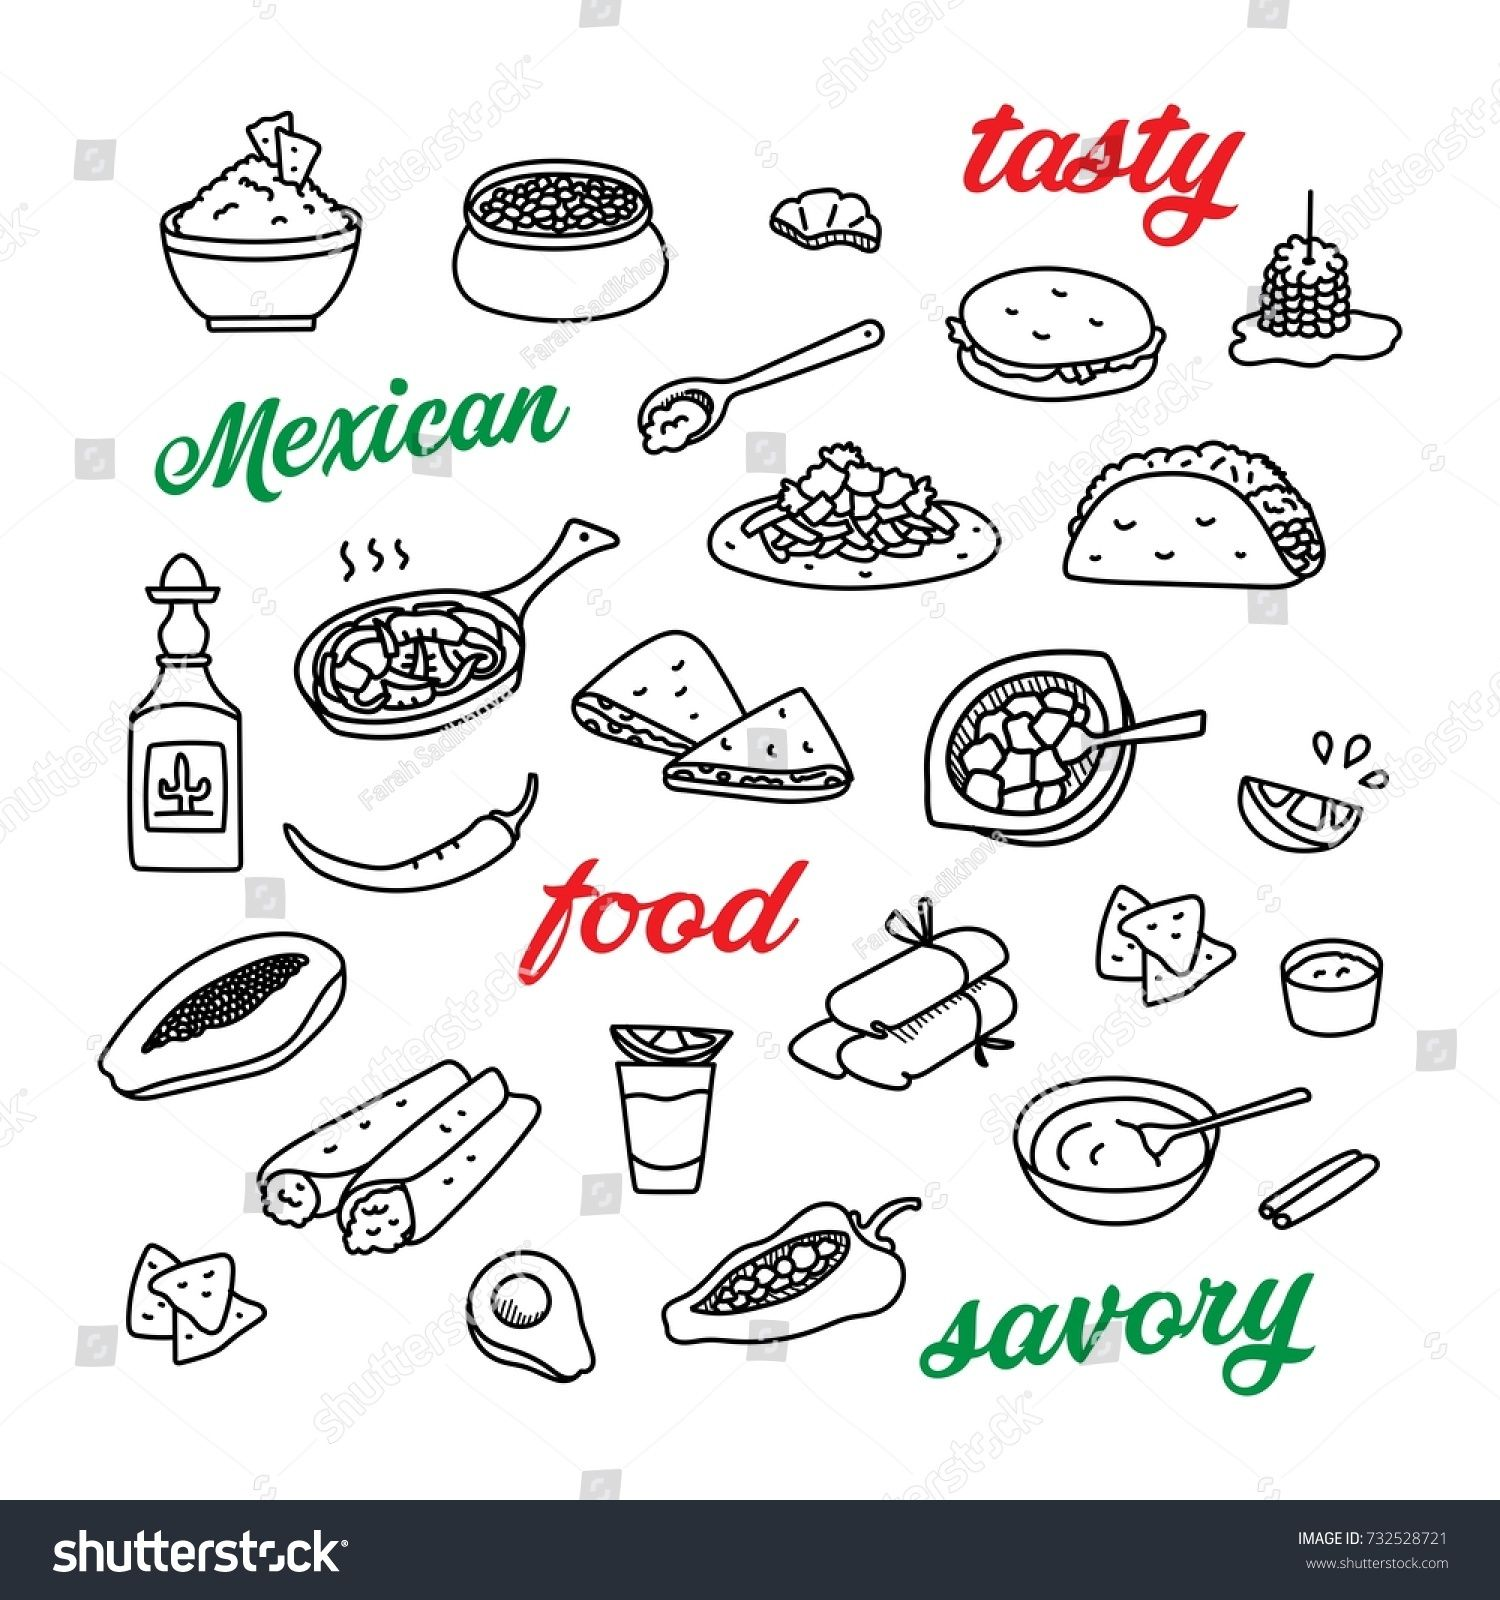 Mexican Cuisine Traditional Food Hand Drawn Doodle Icons Set With Tequila Quesadillas Burritos Tacos Nachos Traditional Food Mexican Cuisine Food Doodles